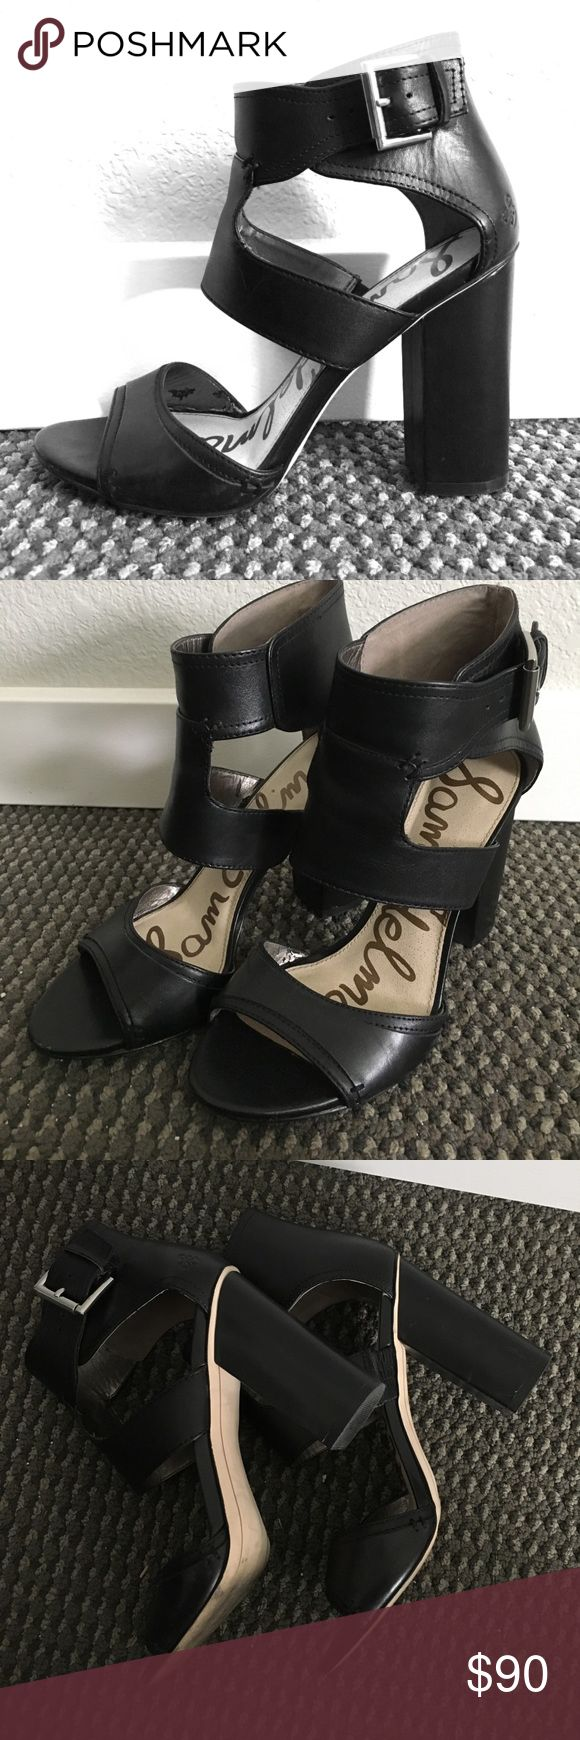 Sam Edelmen: Black pleather heels Black. Fake Leather. Silver buckles. Chunky heels. 4 inches tall. Ankle wrap. Comfortable. Sam Edelman Shoes Heels